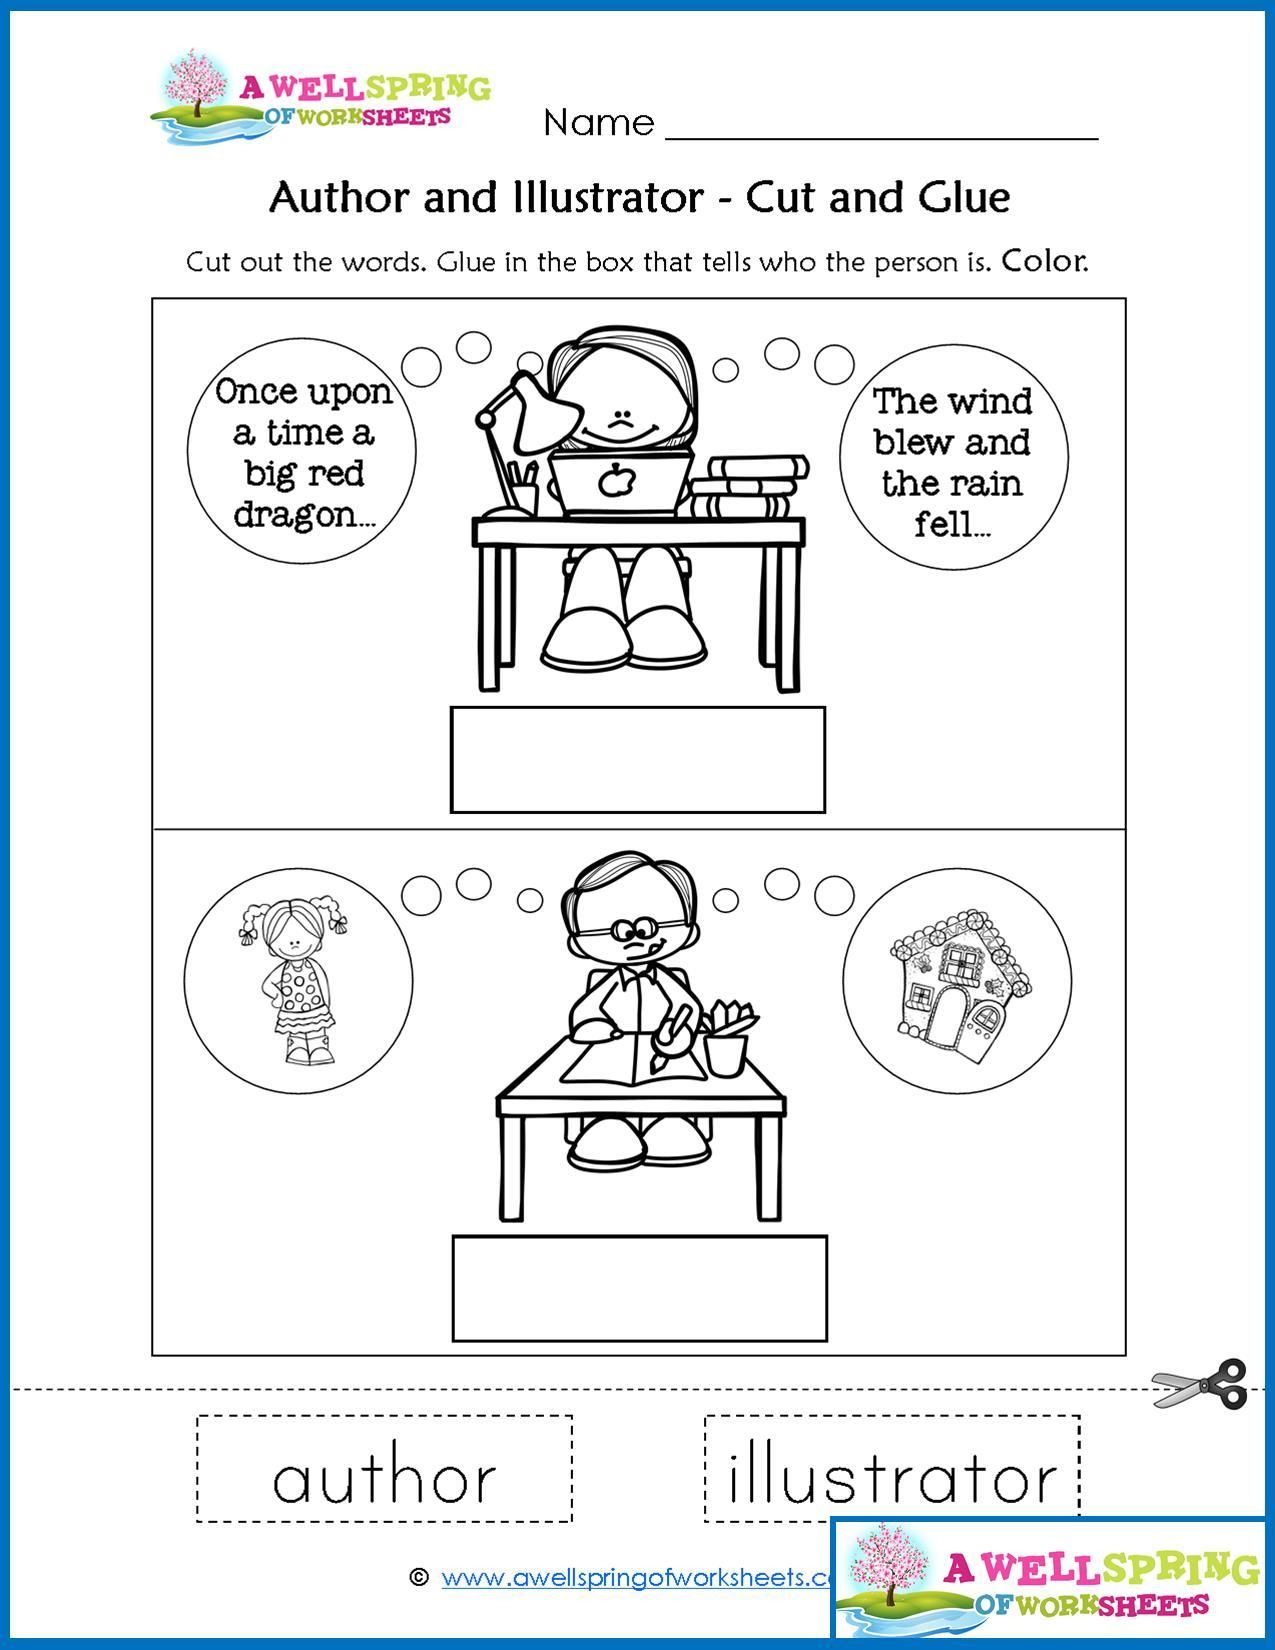 Worksheets By Subject A Wellspring Of Worksheets Parts Of A Book Kindergarten Library Lessons Kindergarten Worksheets [ 1650 x 1275 Pixel ]